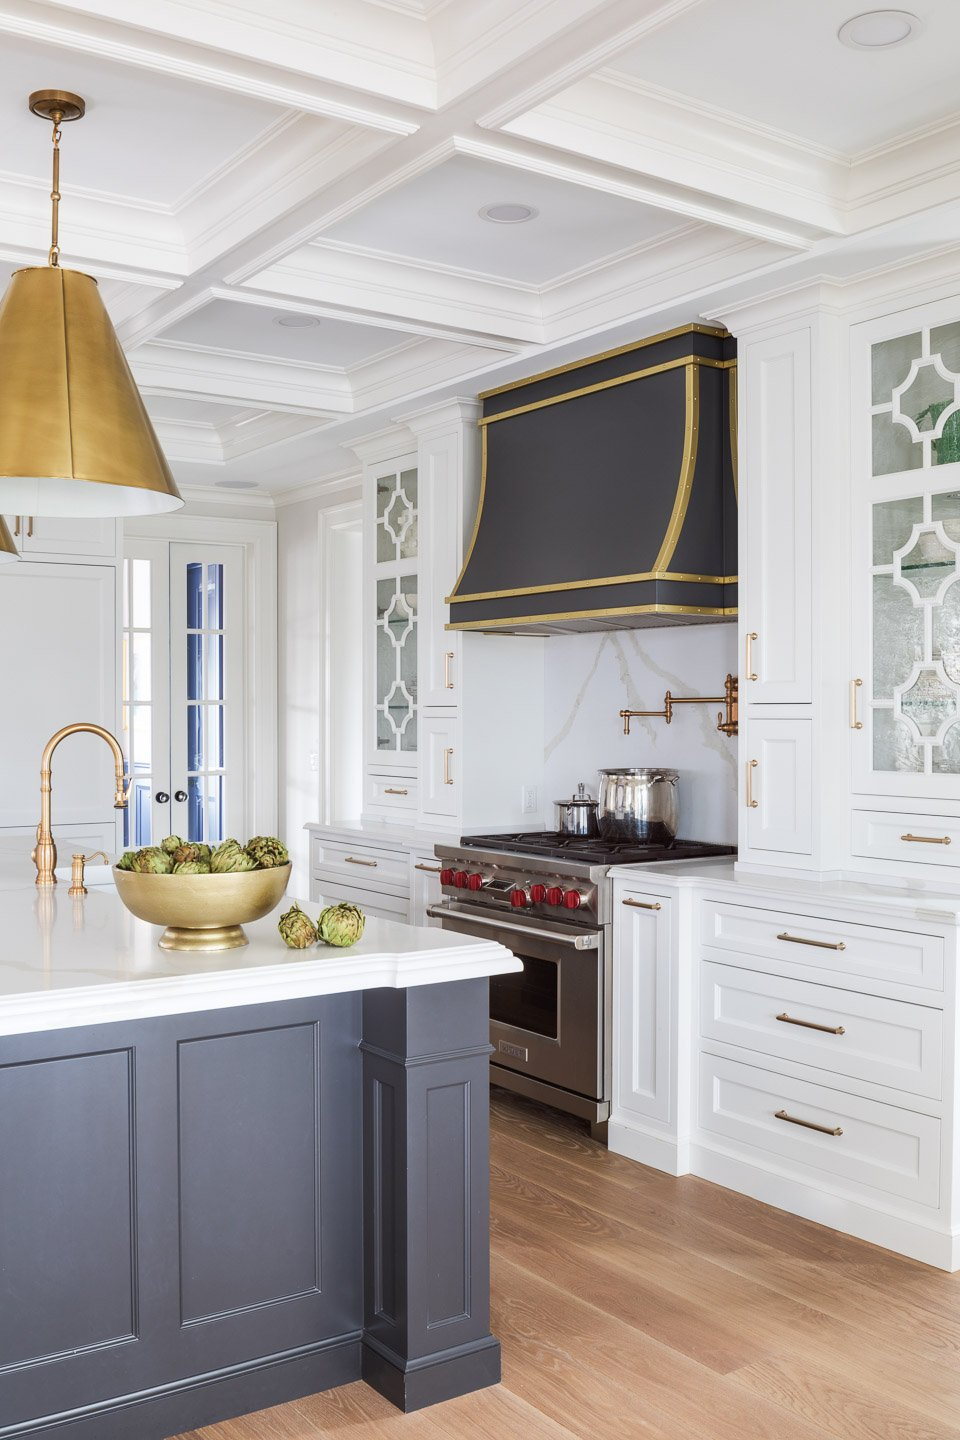 Blakely Interior Design | The Jersey Palm Project | Kitchen and Kitchen Island